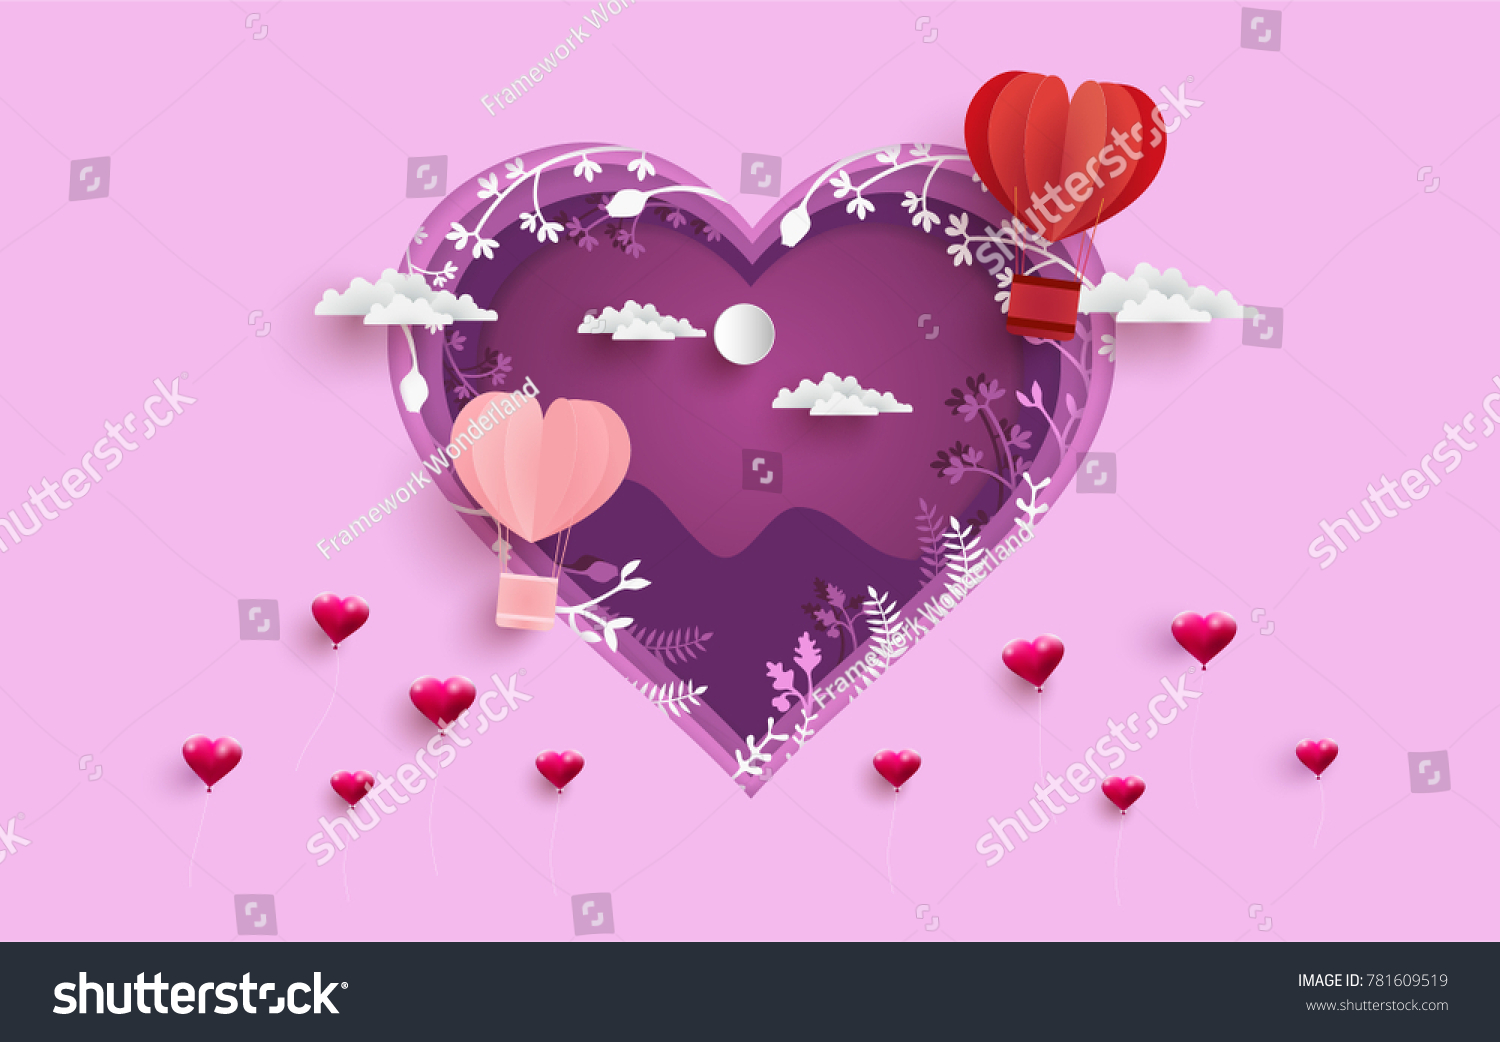 Illustration symbol love design paper art stock vector 781609519 illustration symbol of love with the design of paper art and craft hot air balloons biocorpaavc Images